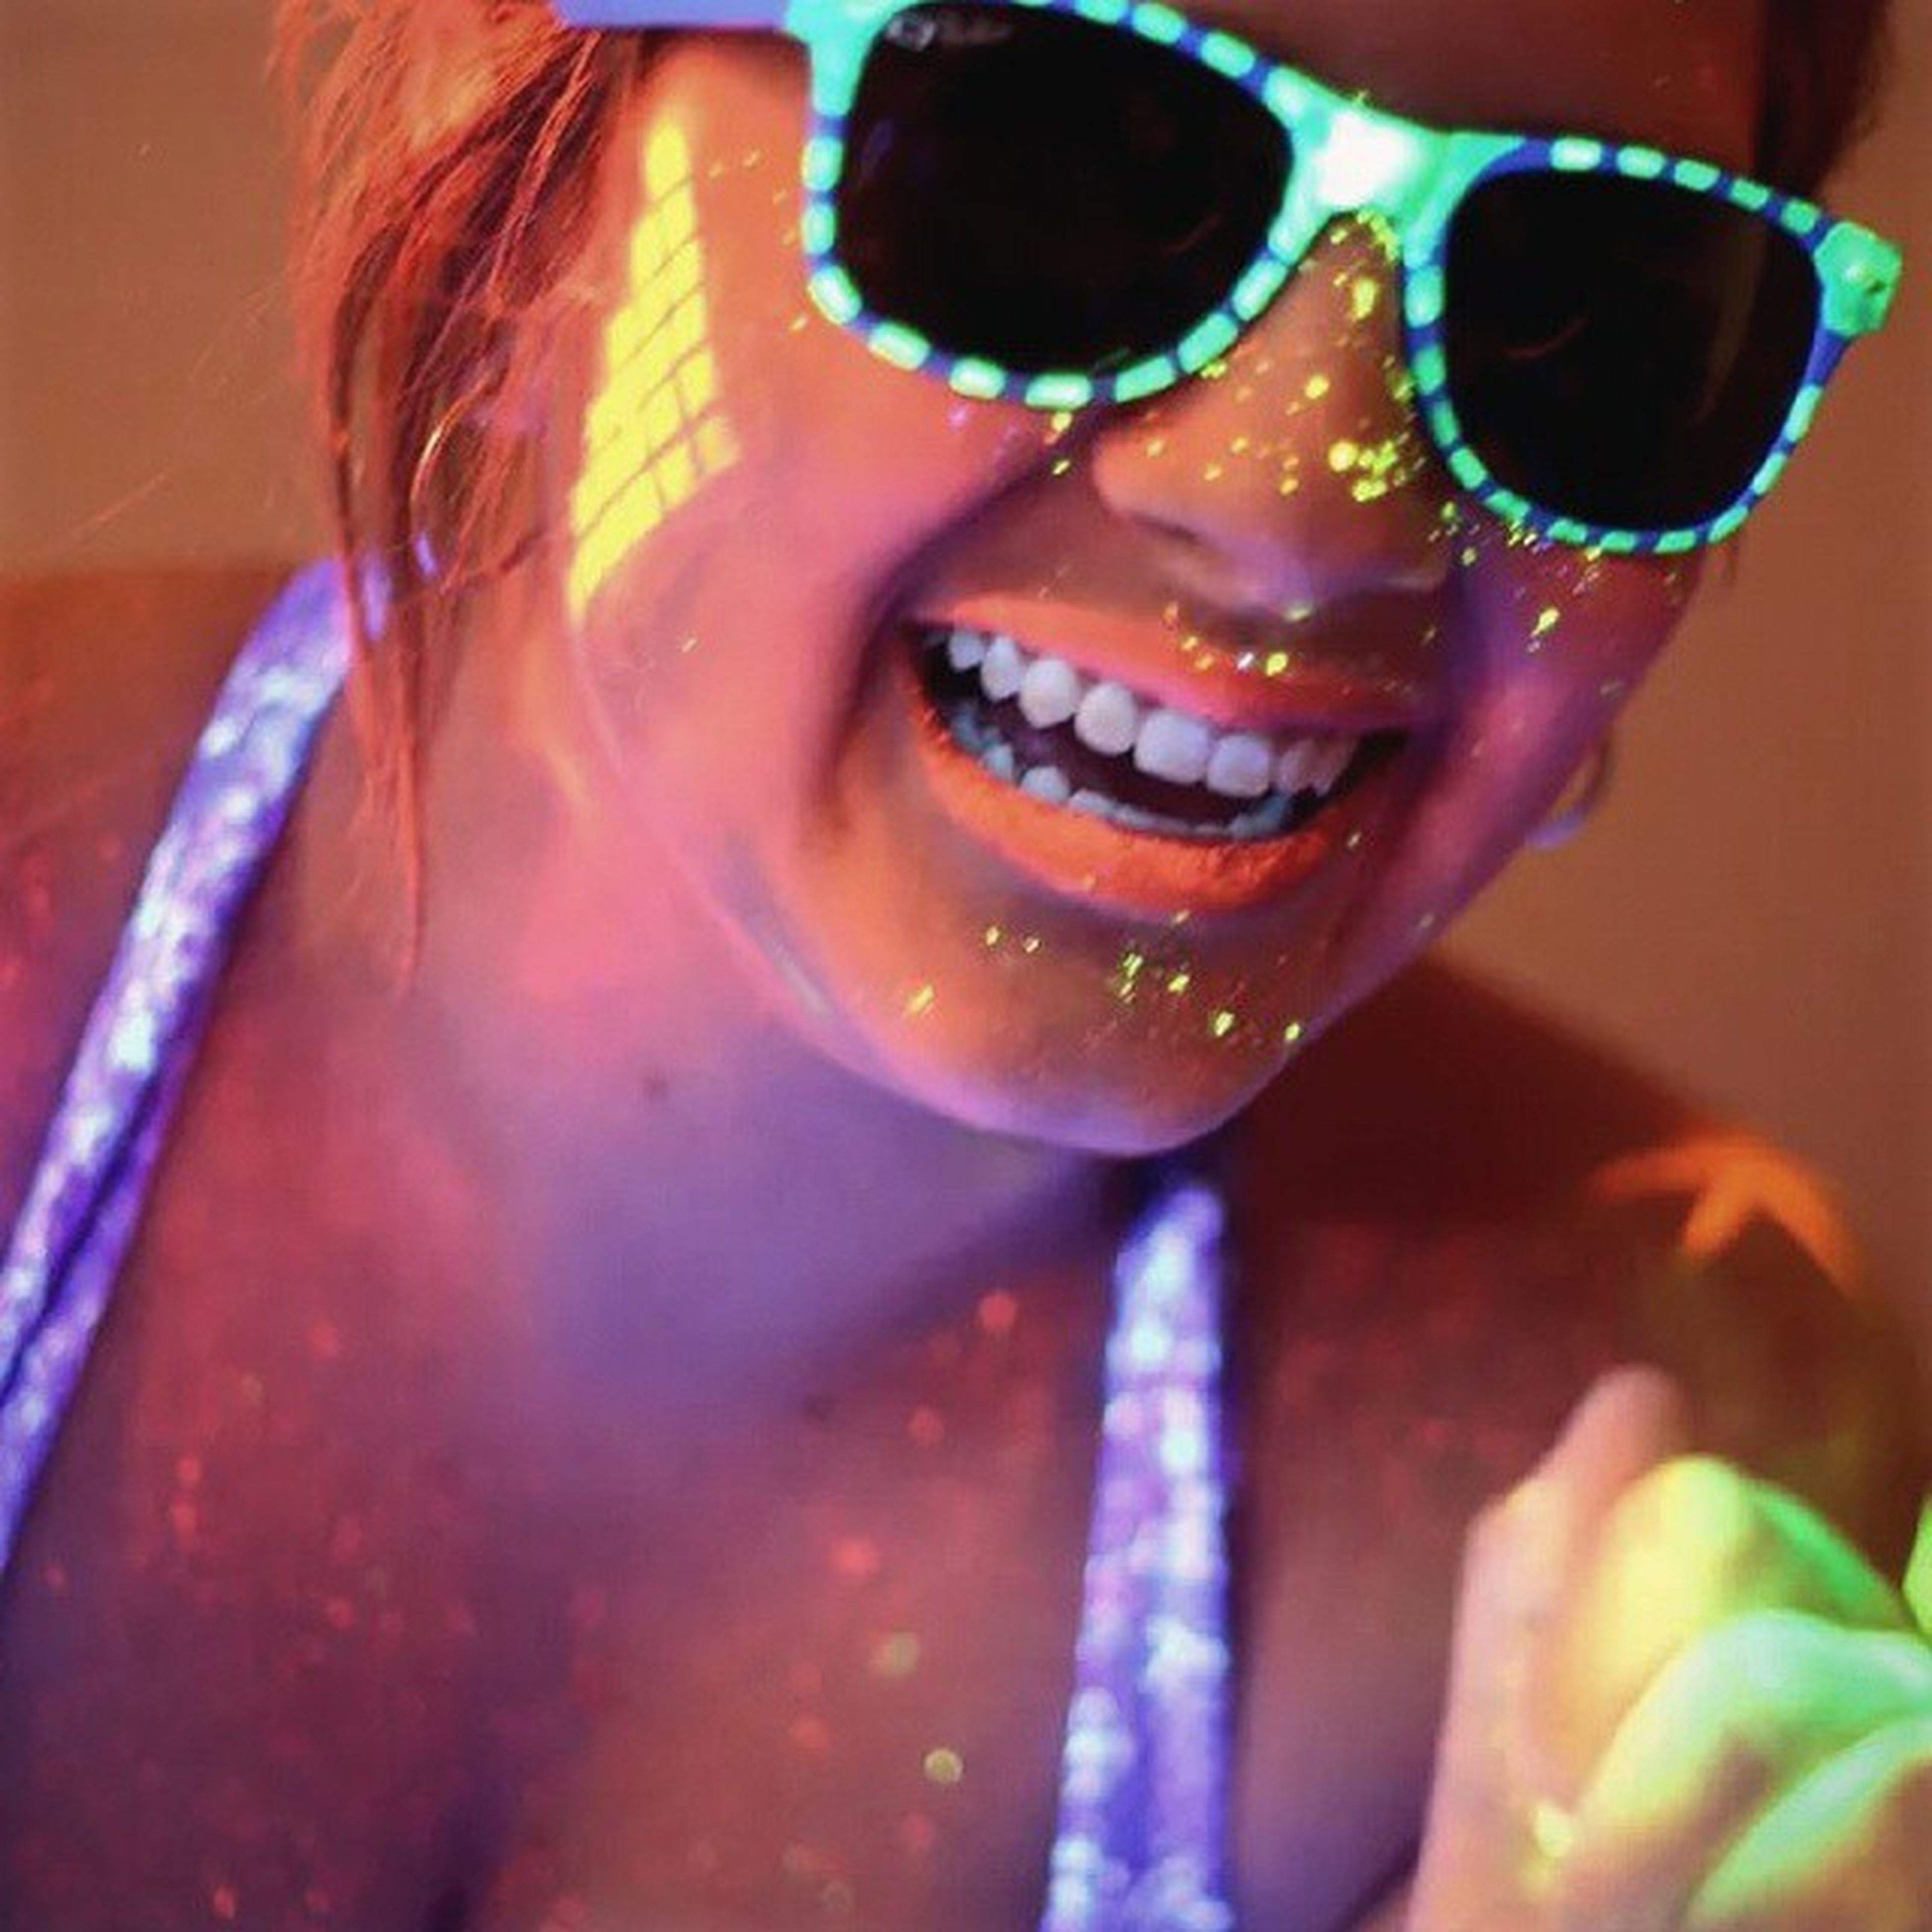 lifestyles, leisure activity, close-up, childhood, indoors, holding, part of, focus on foreground, water, sunglasses, reflection, person, day, refreshment, sunlight, casual clothing, wet